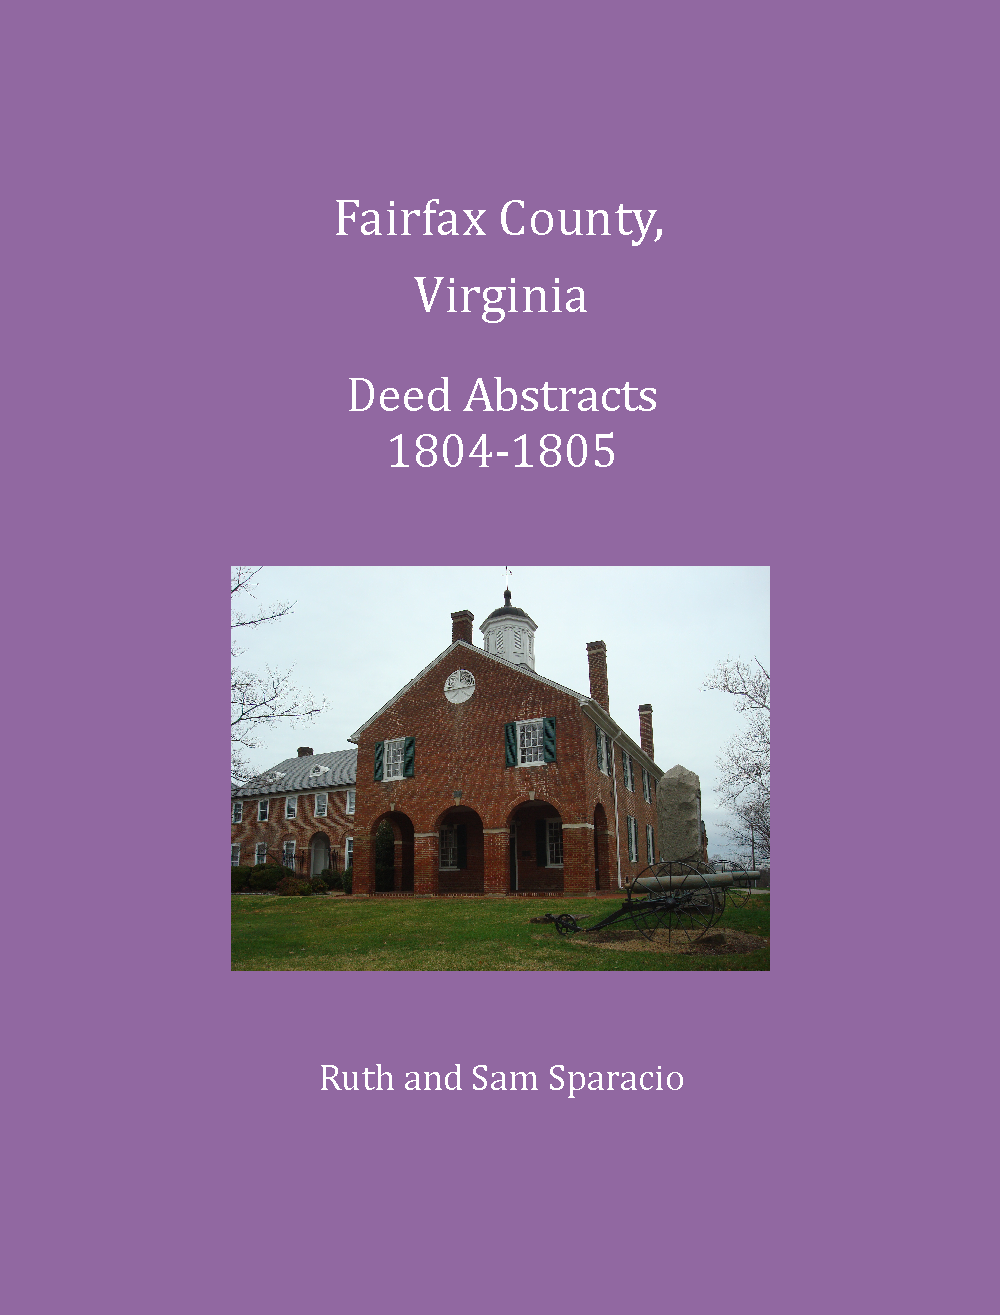 Fairfax County, Virginia Deed Abstracts, 1804-1805